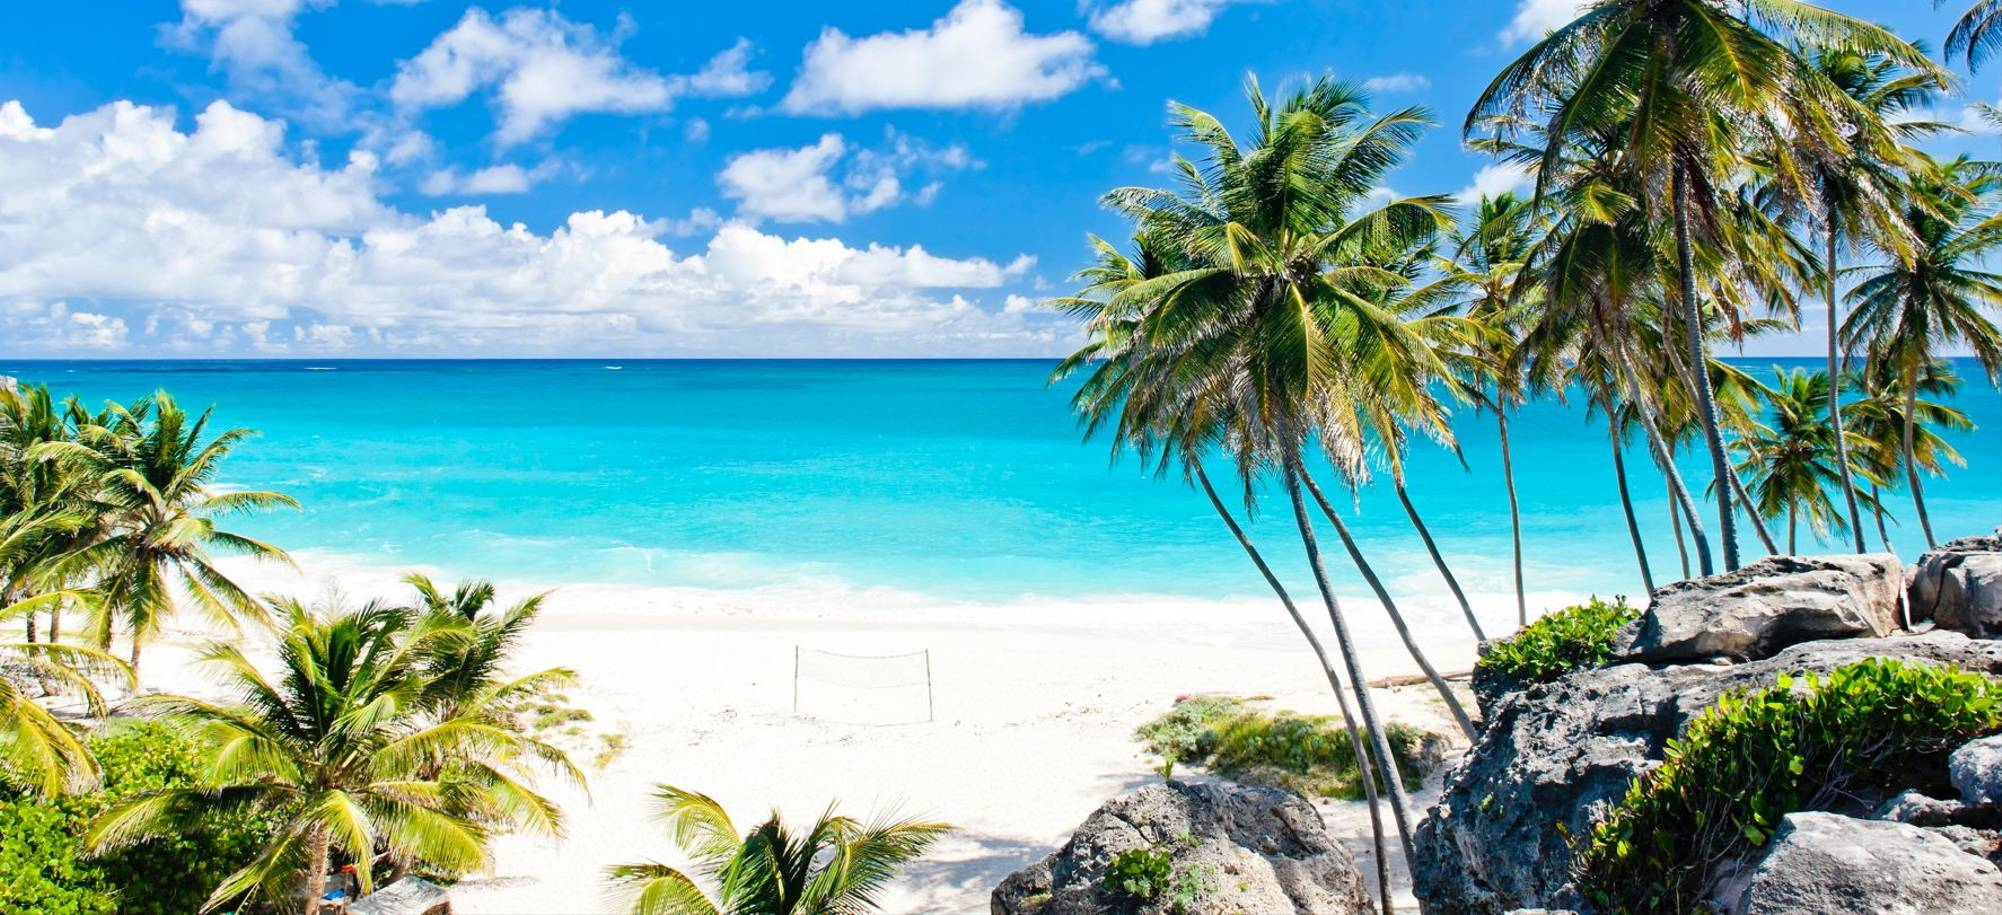 Barbados - Itinerary Desktop.jpg